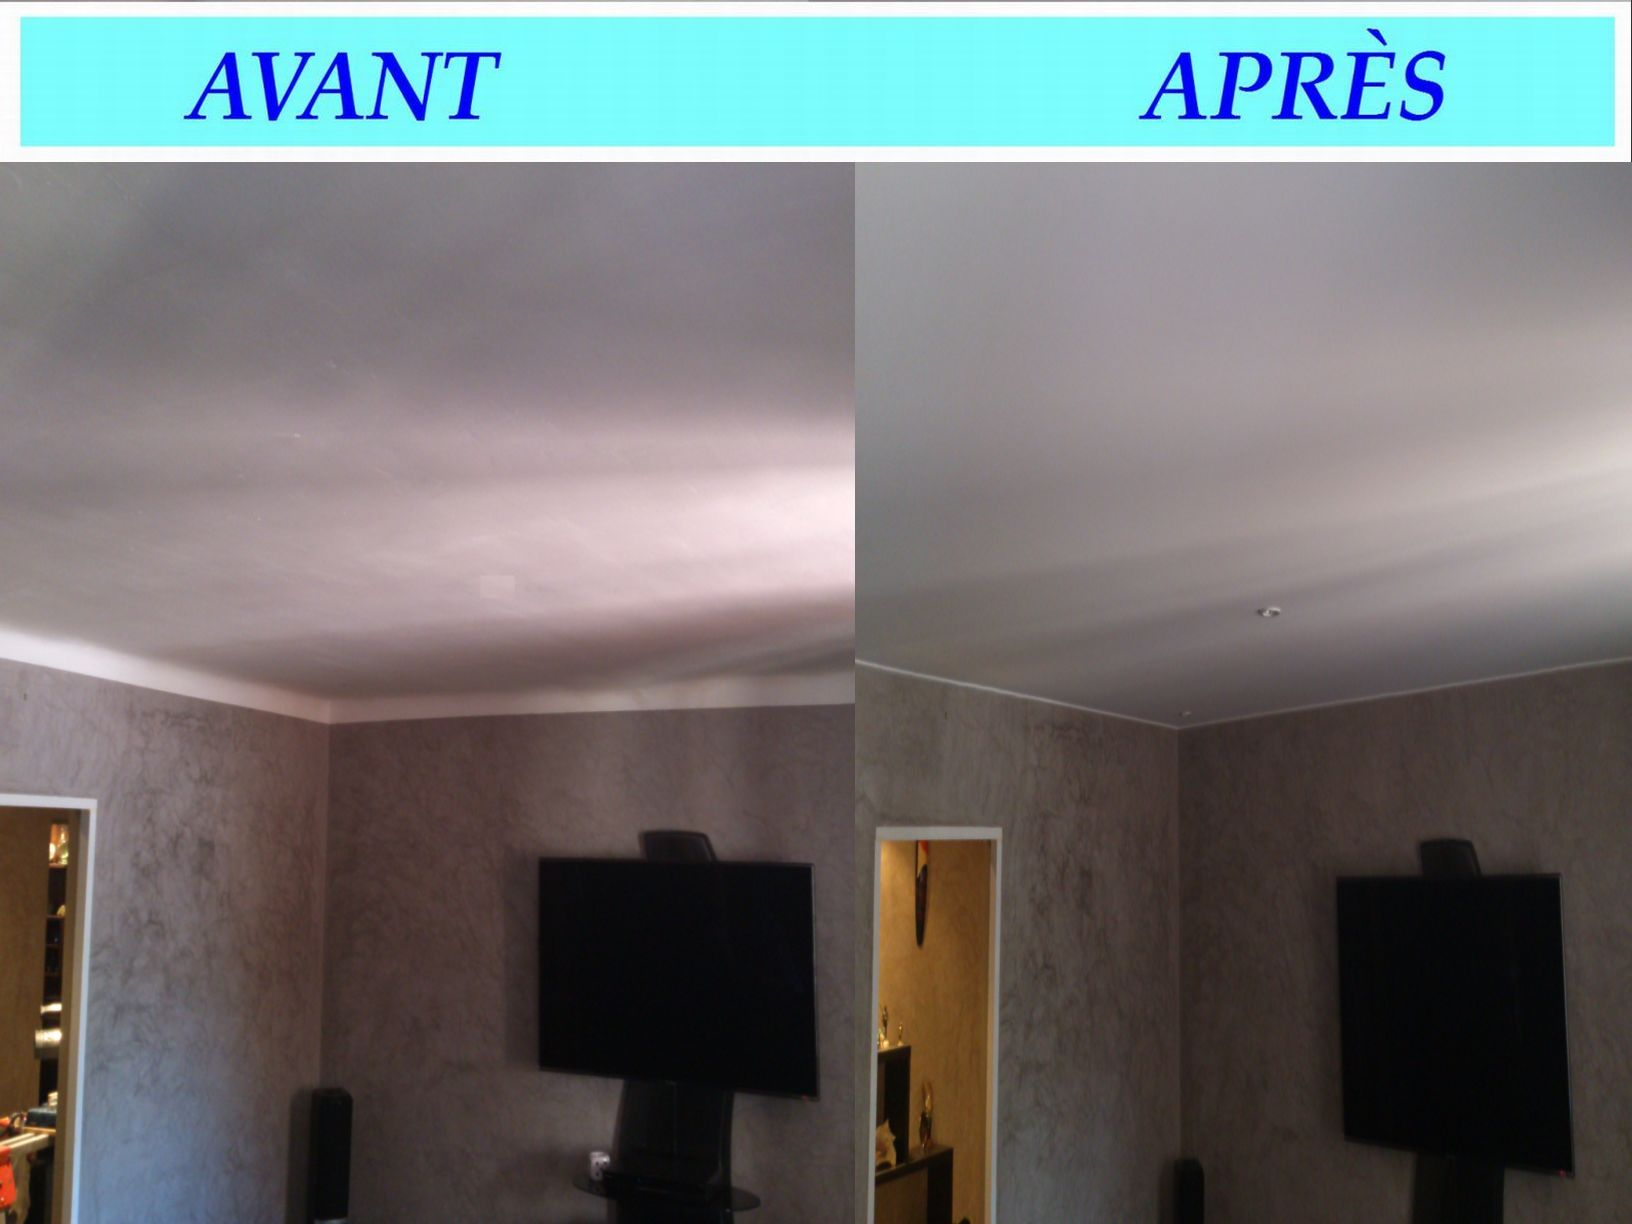 Plafond suspendu tendu salon accueil design et mobilier for Faux plafond tendu